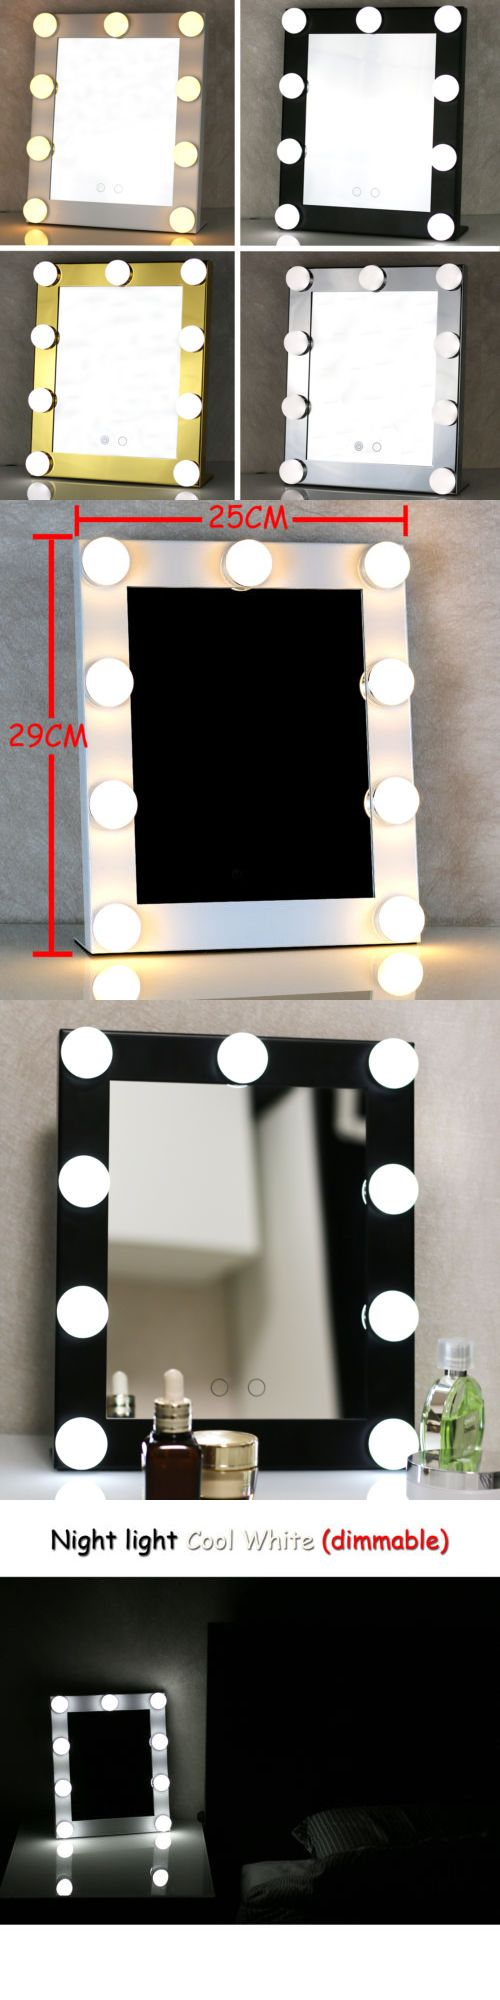 makeup mirrors led bulb vanity lighted hollywood makeup mirror with dimmer stage beauty mirror buy